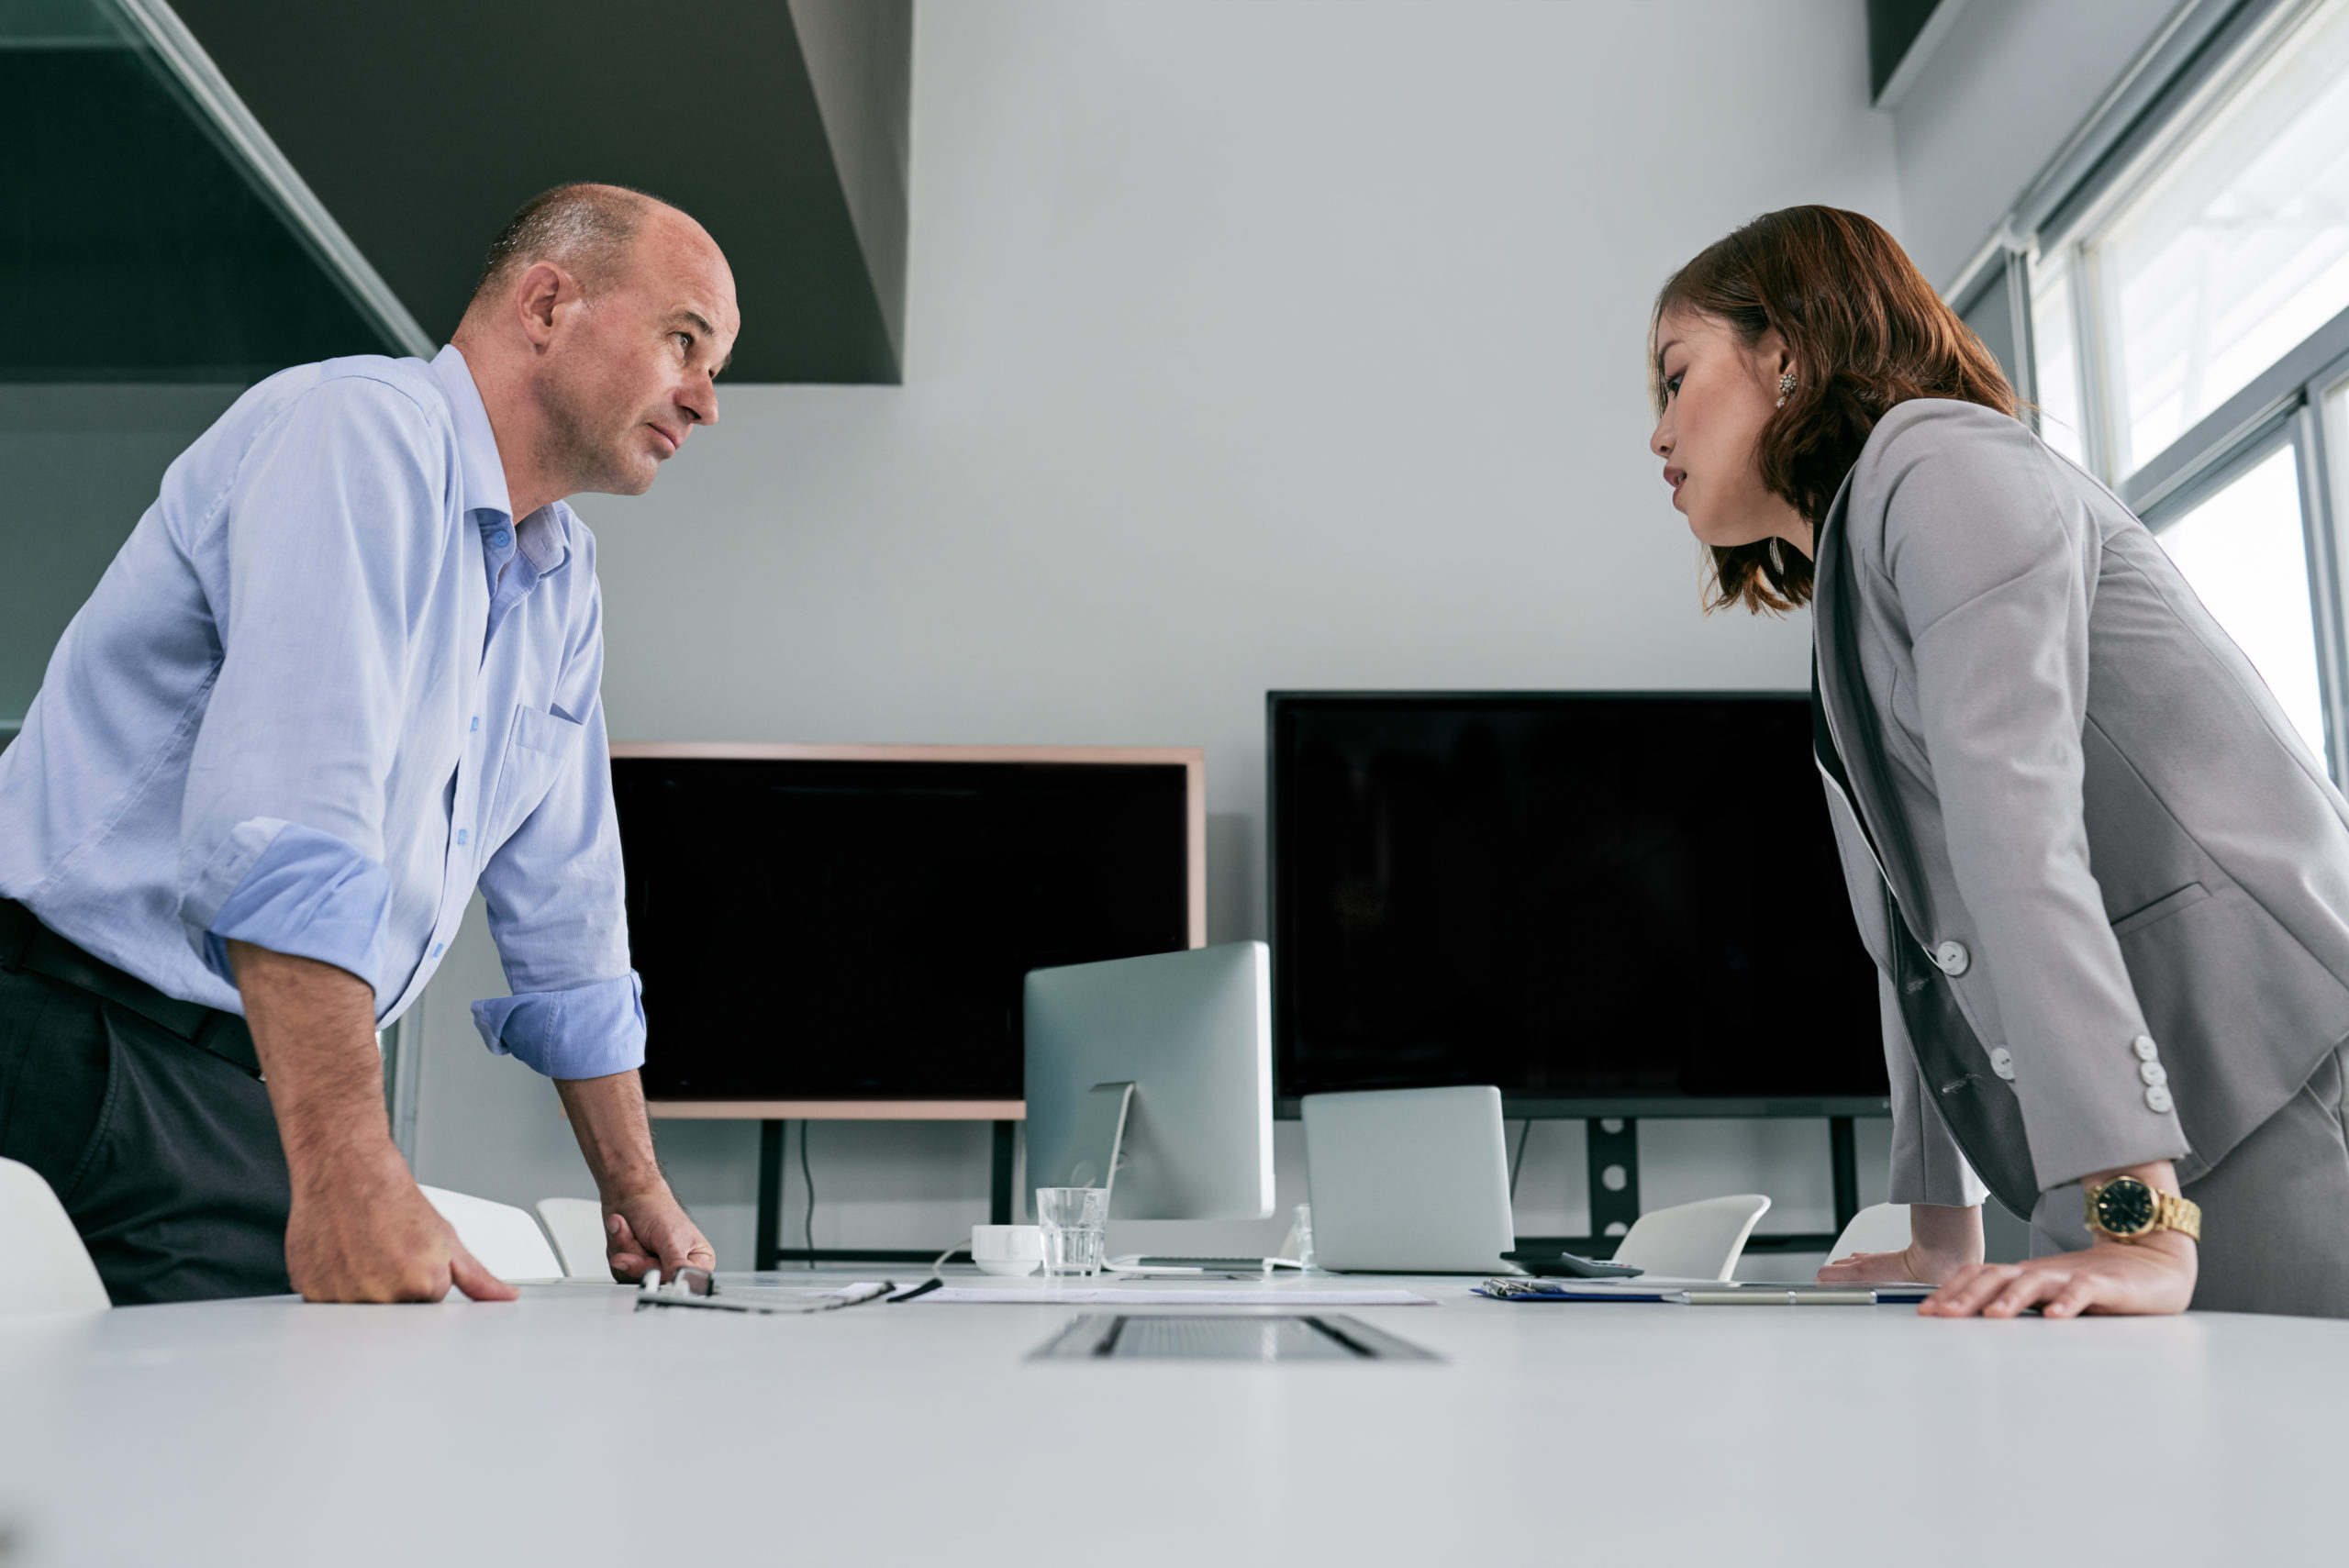 Executive Leadership Podcast #103: If You Don't Step Up to Conflict, Conflict Will Step Up to You